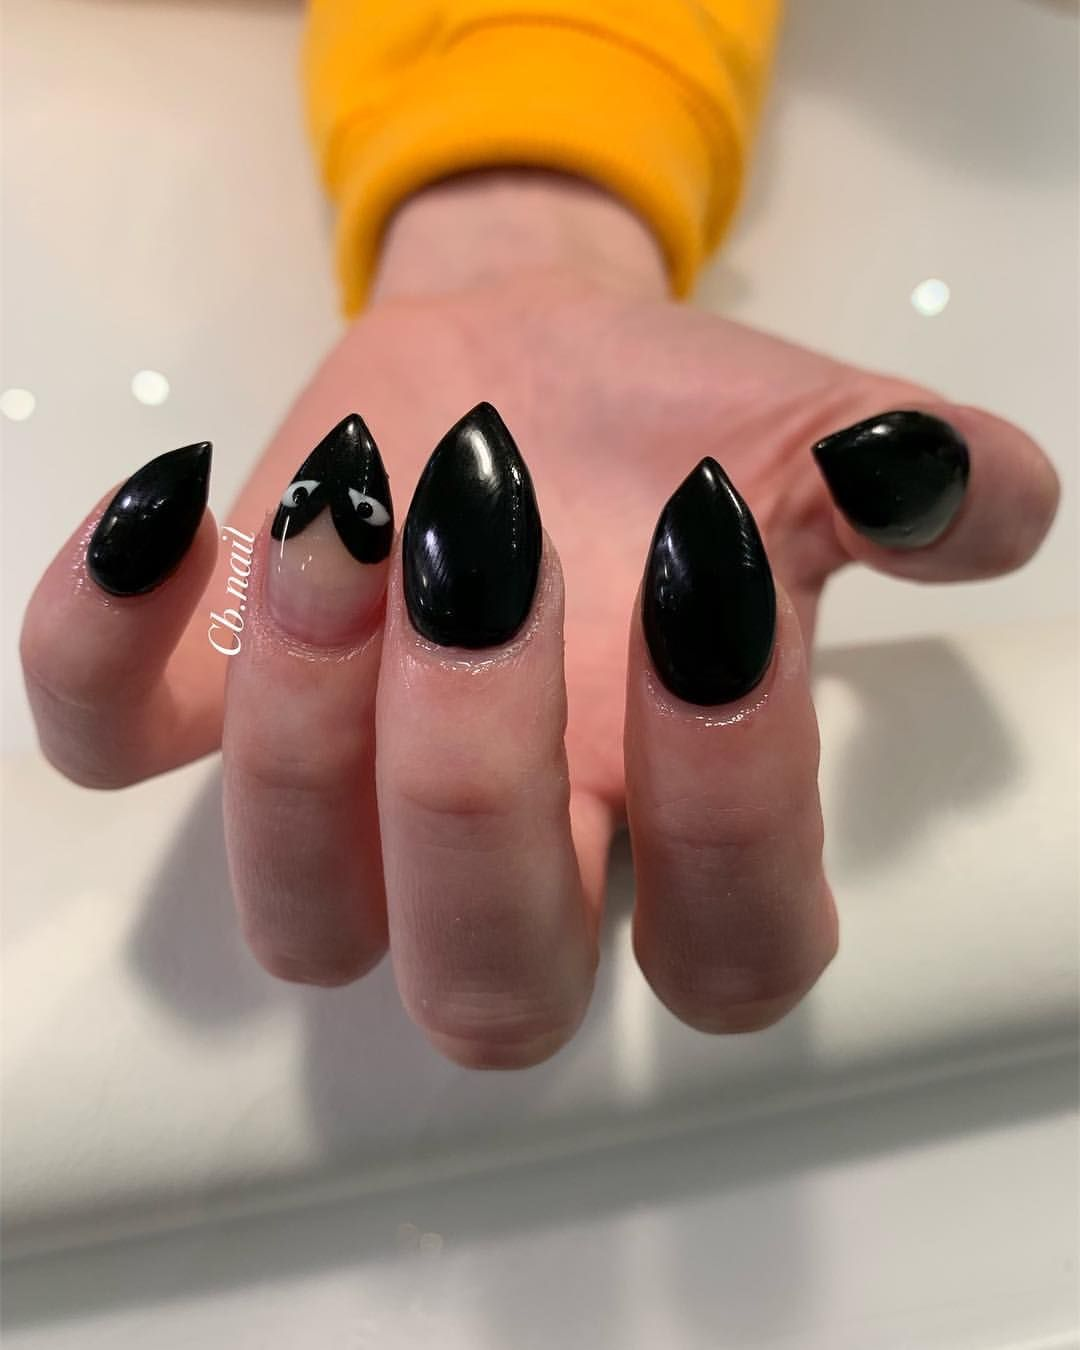 Commes Des Garcons Nails Stiletto Nails Short Nails Heart Nails Black Nails Nail Art Nail Des Stiletto Nails Short Heart Nails Stiletto Nails Short Black